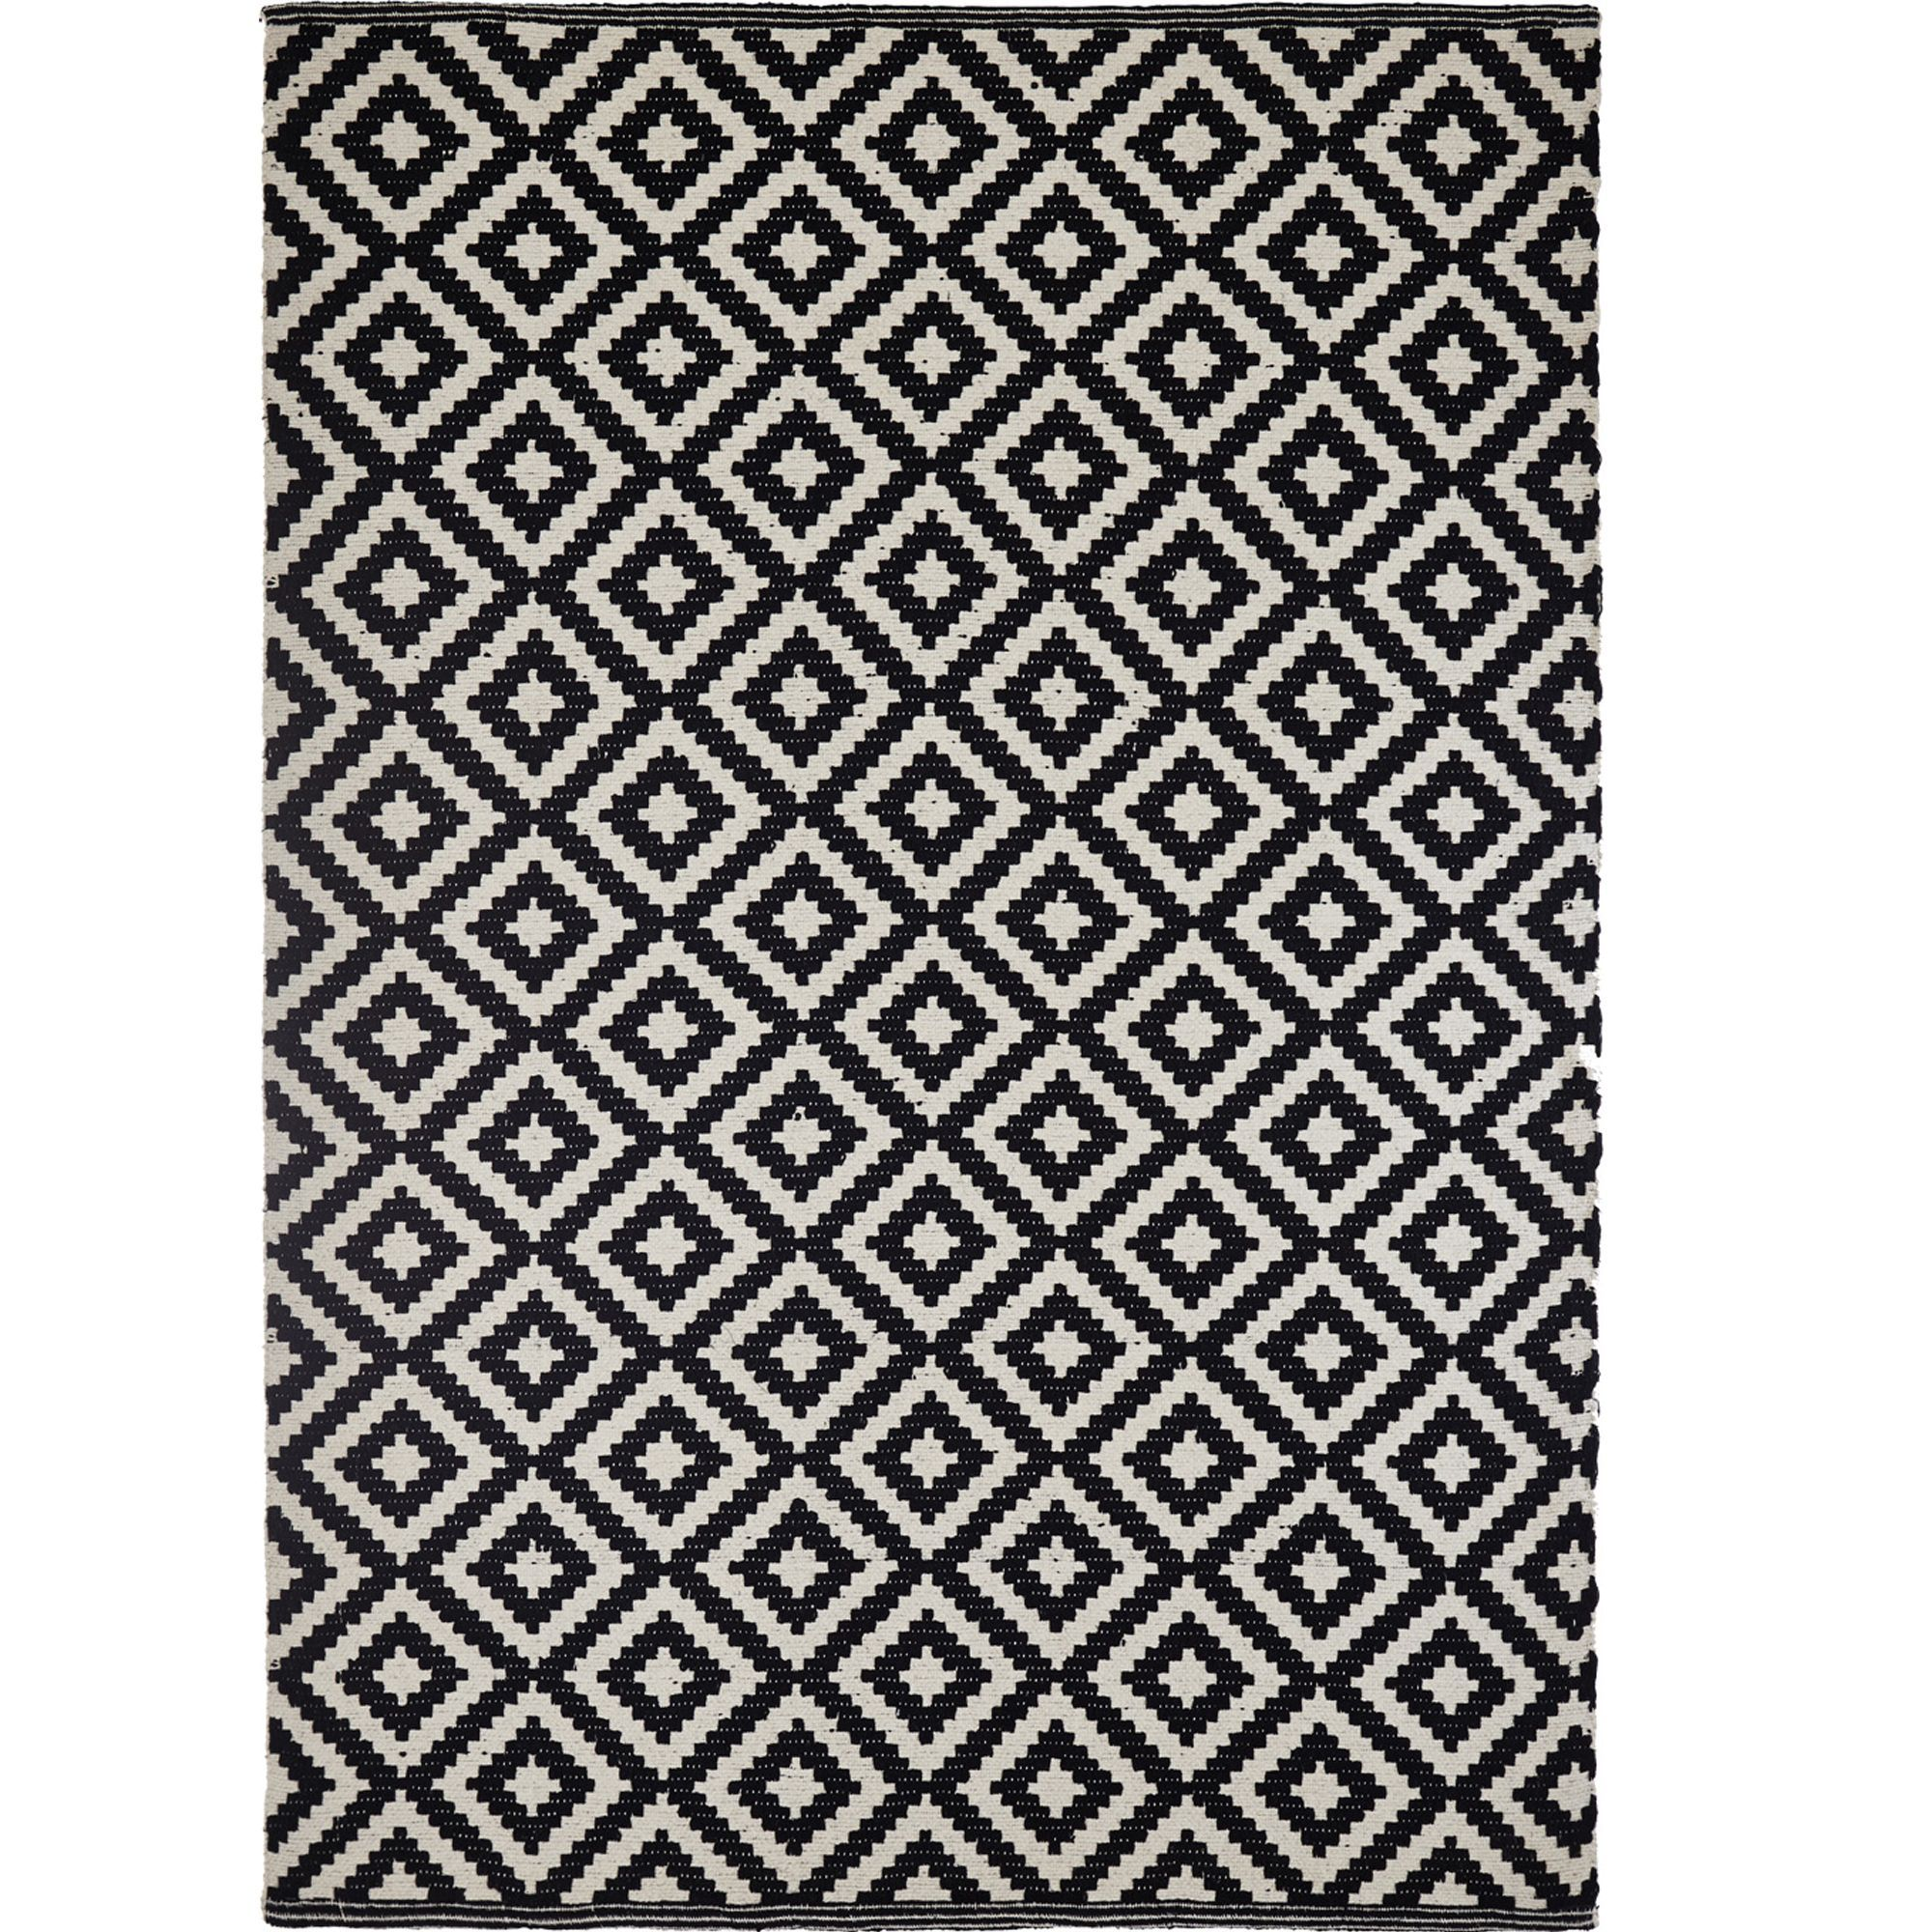 Colours harrietta black white geometric rug l230cm w160cm departments diy at bq